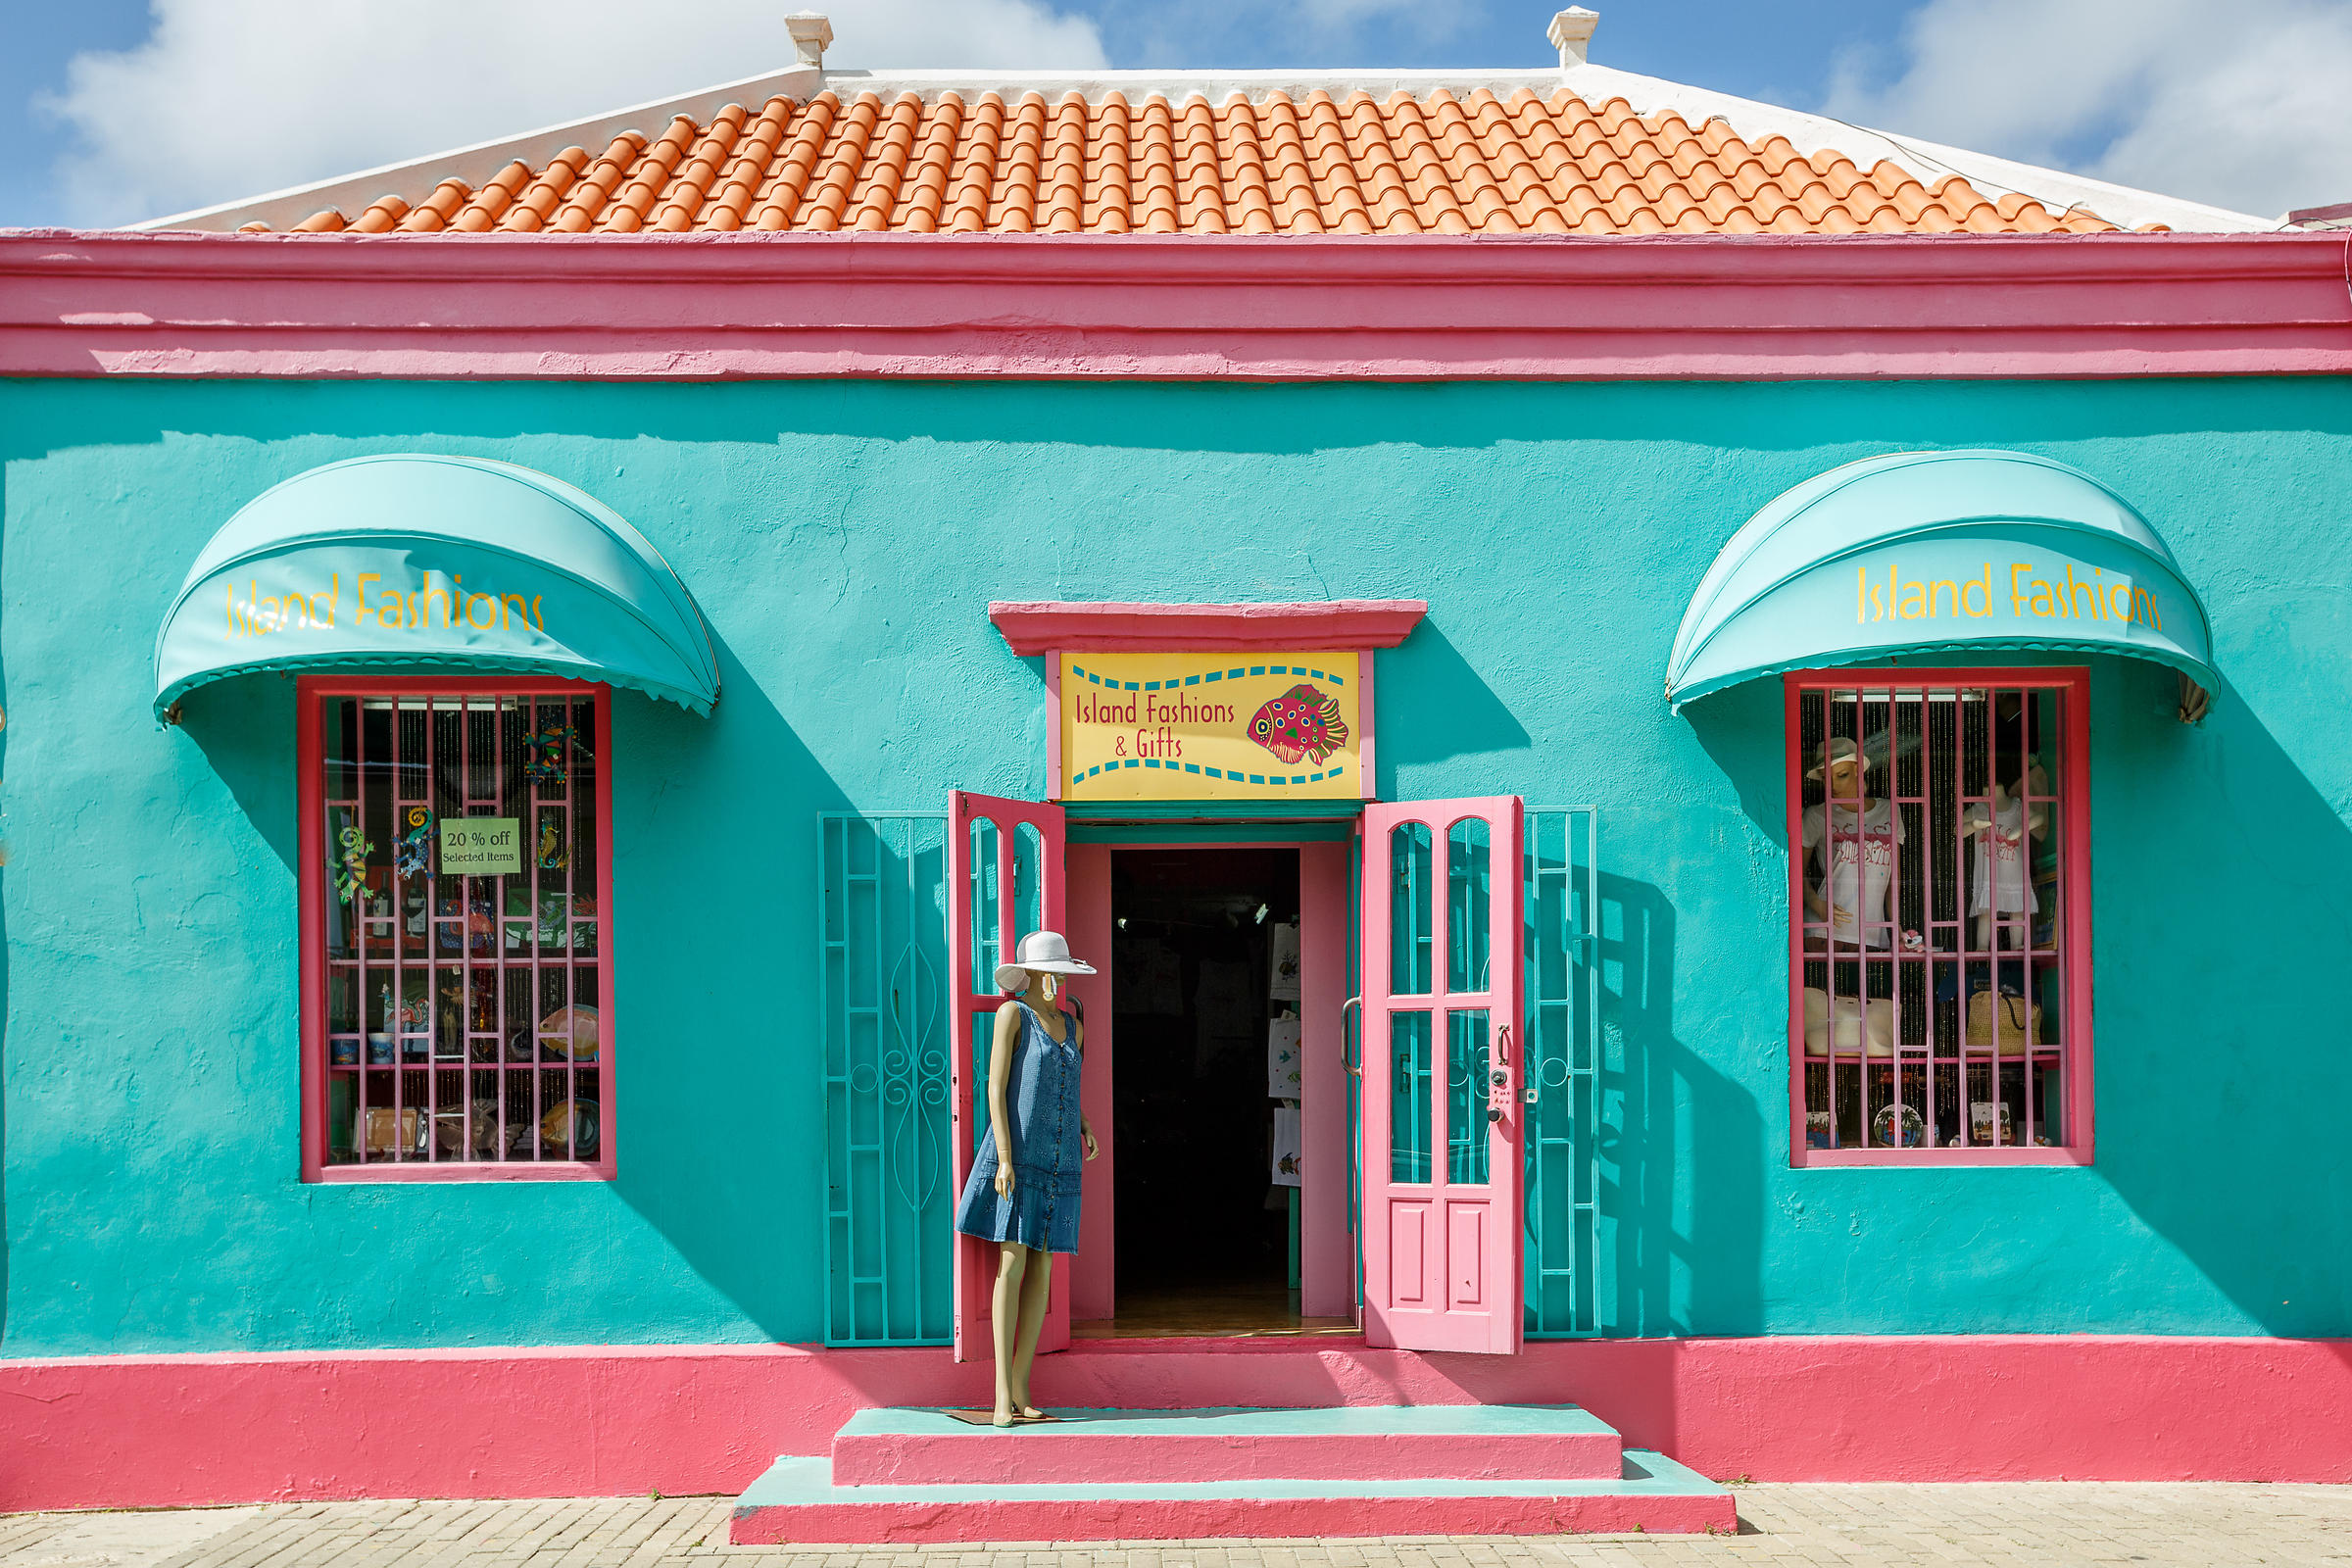 Brightly coloured fashion shop in Kralendijk, Bonaire